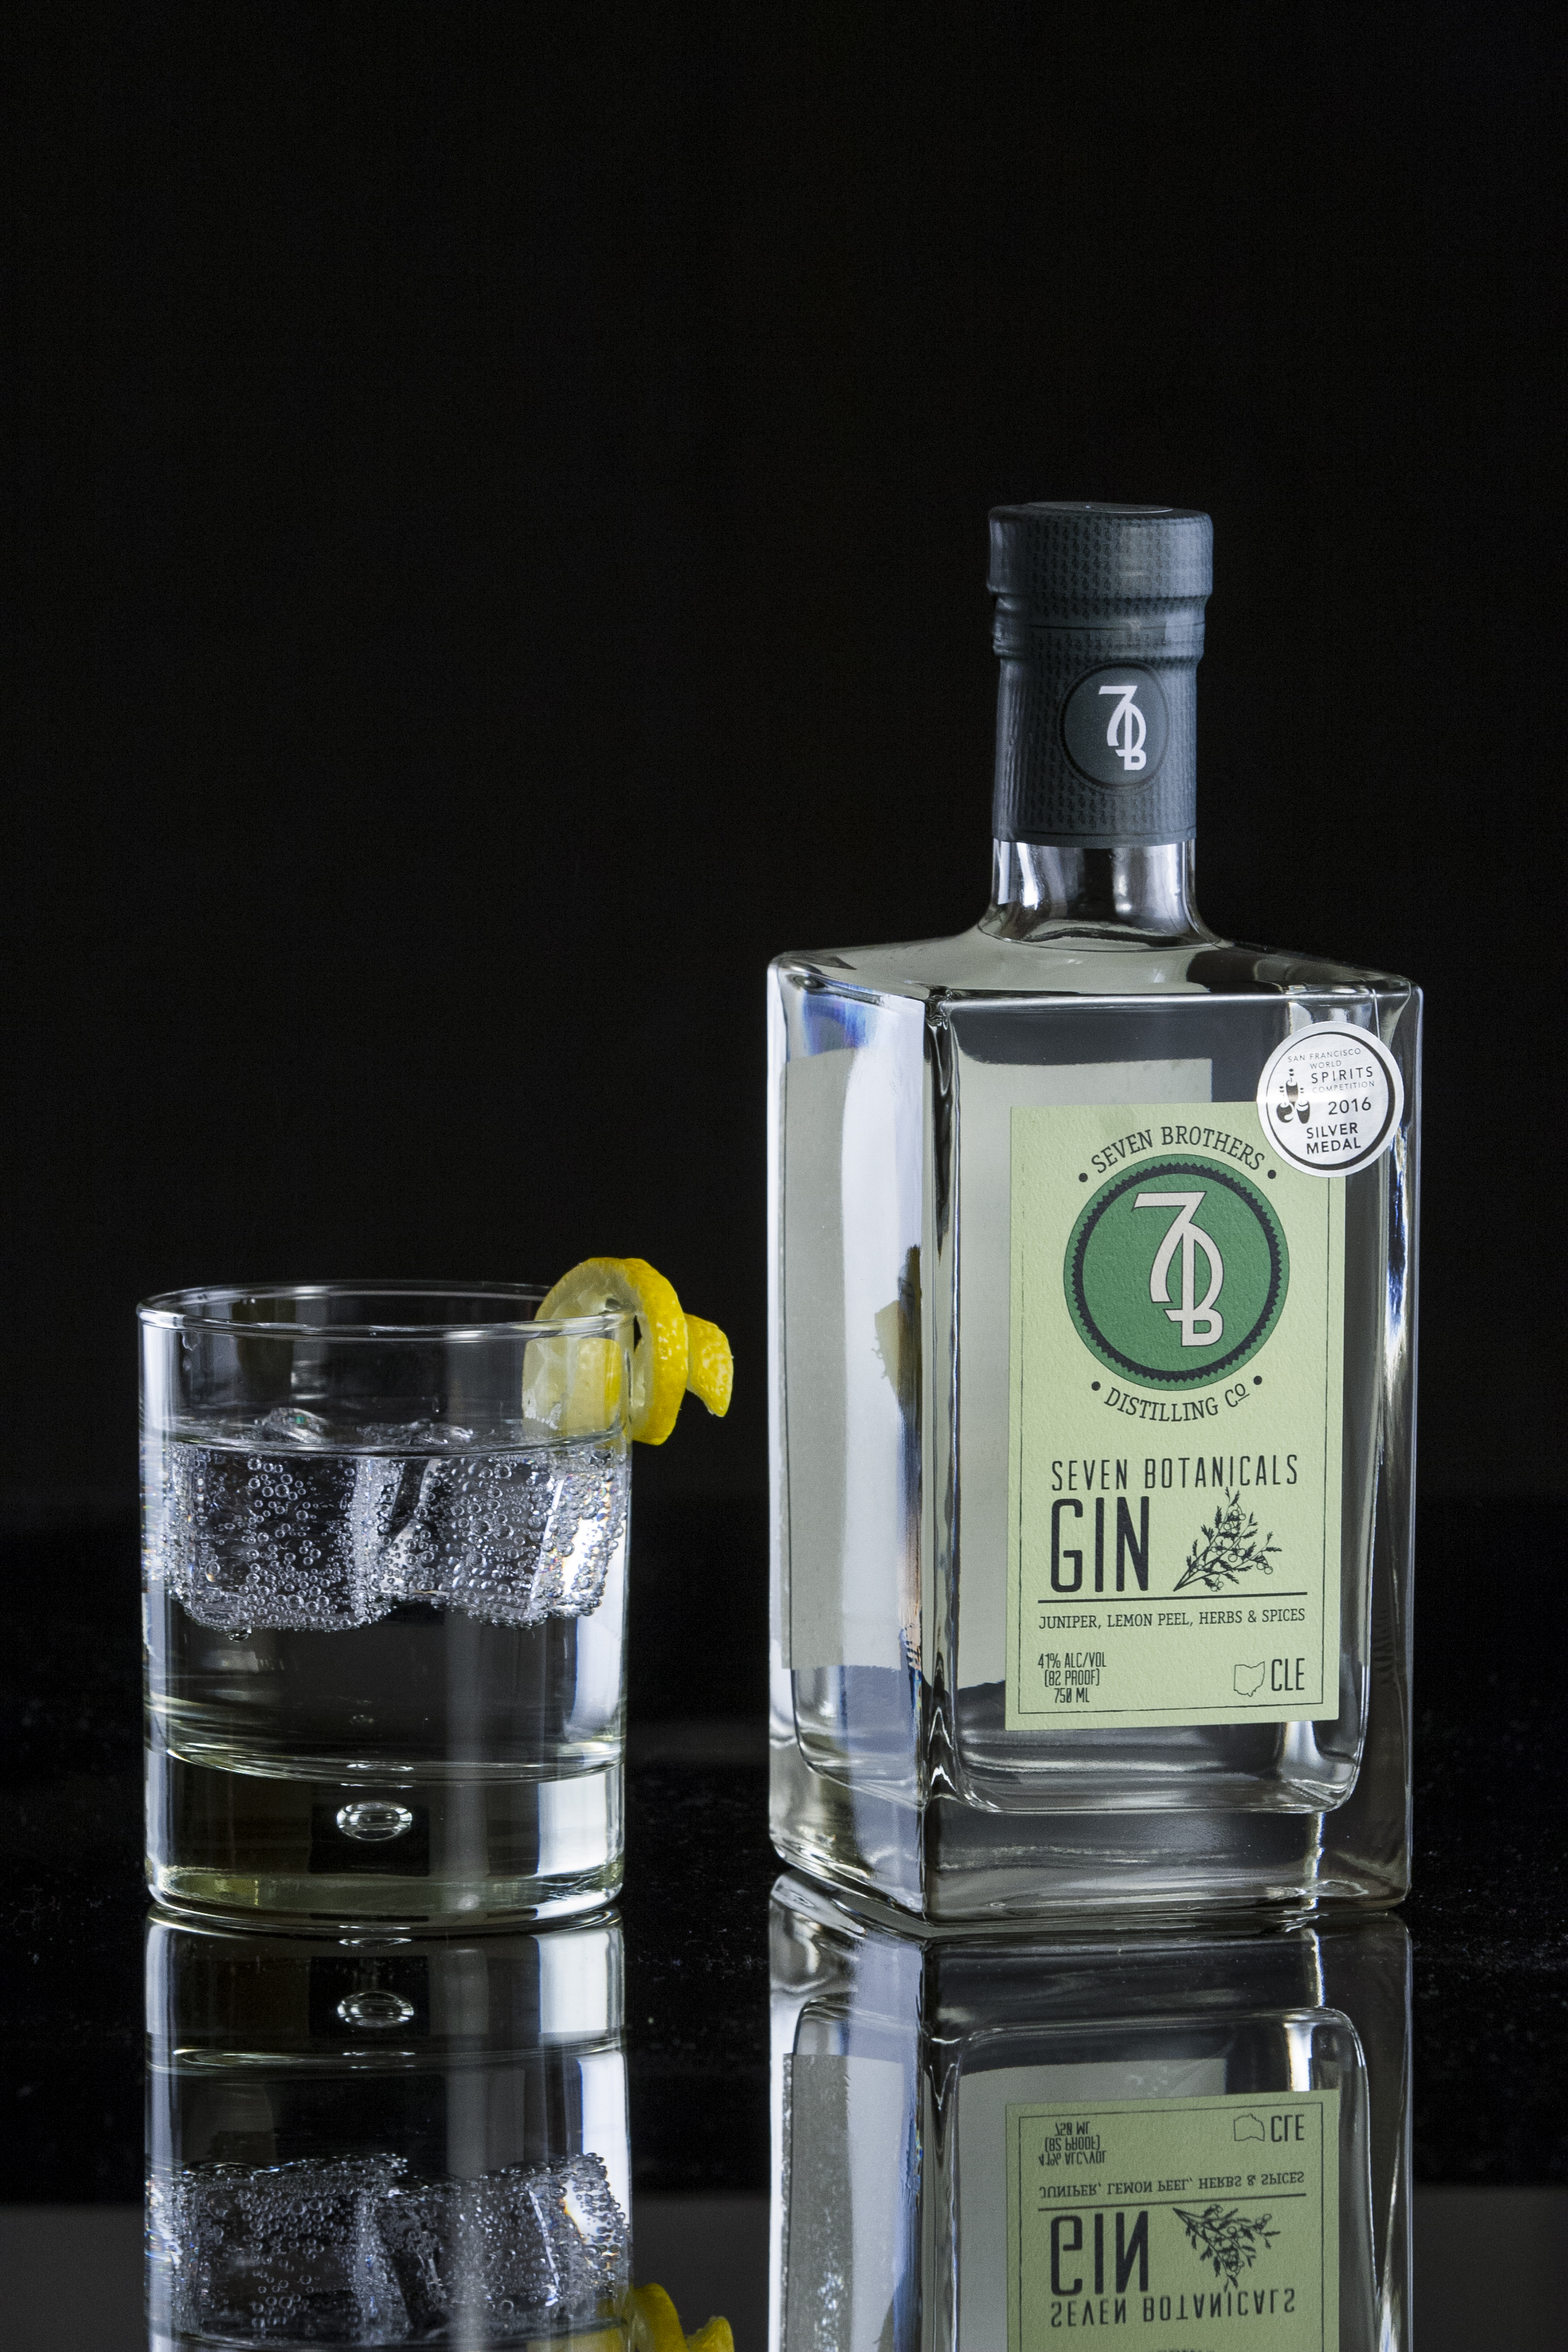 7B G&T - 2 oz Seven Brothers Seven Botanicals Gin3.5 oz Club Soda.75 oz Tonic SyrupOption: Substitute All Natural Tonic Water for combination of Club Soda and Tonic SyrupStir briefly over ice into a Collins glass. Garnish with a lemon wedge.